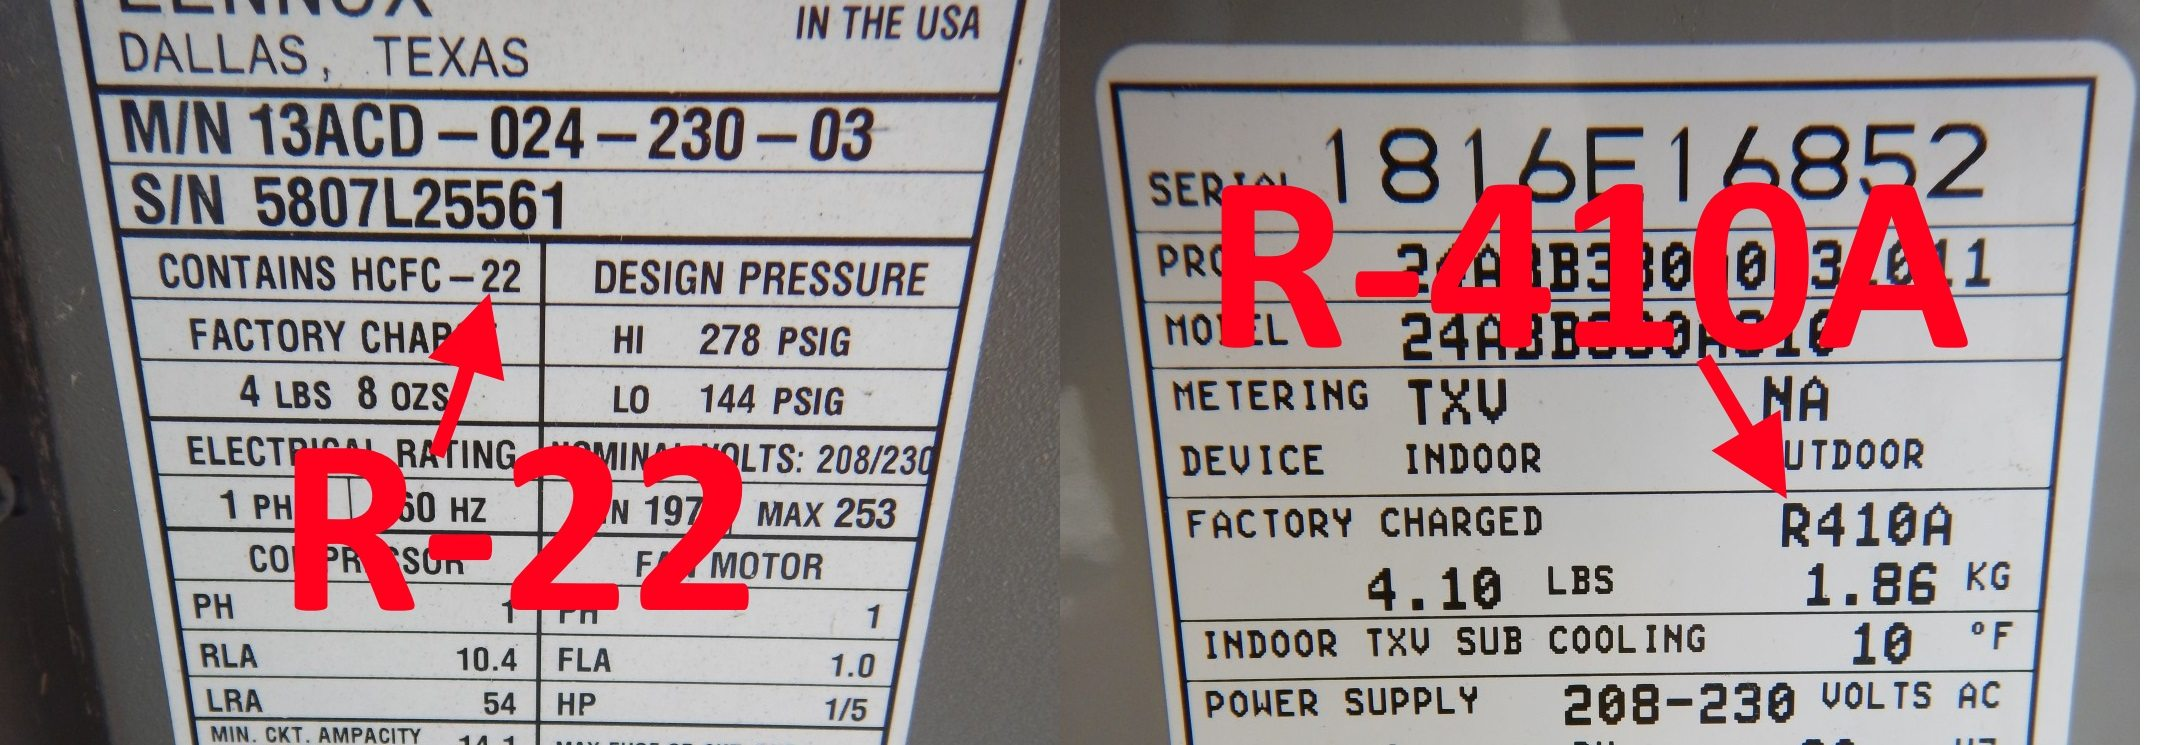 How Much Is Freon >> Does Your Air Conditioner Use R 22 Refrigerant Here S Why You